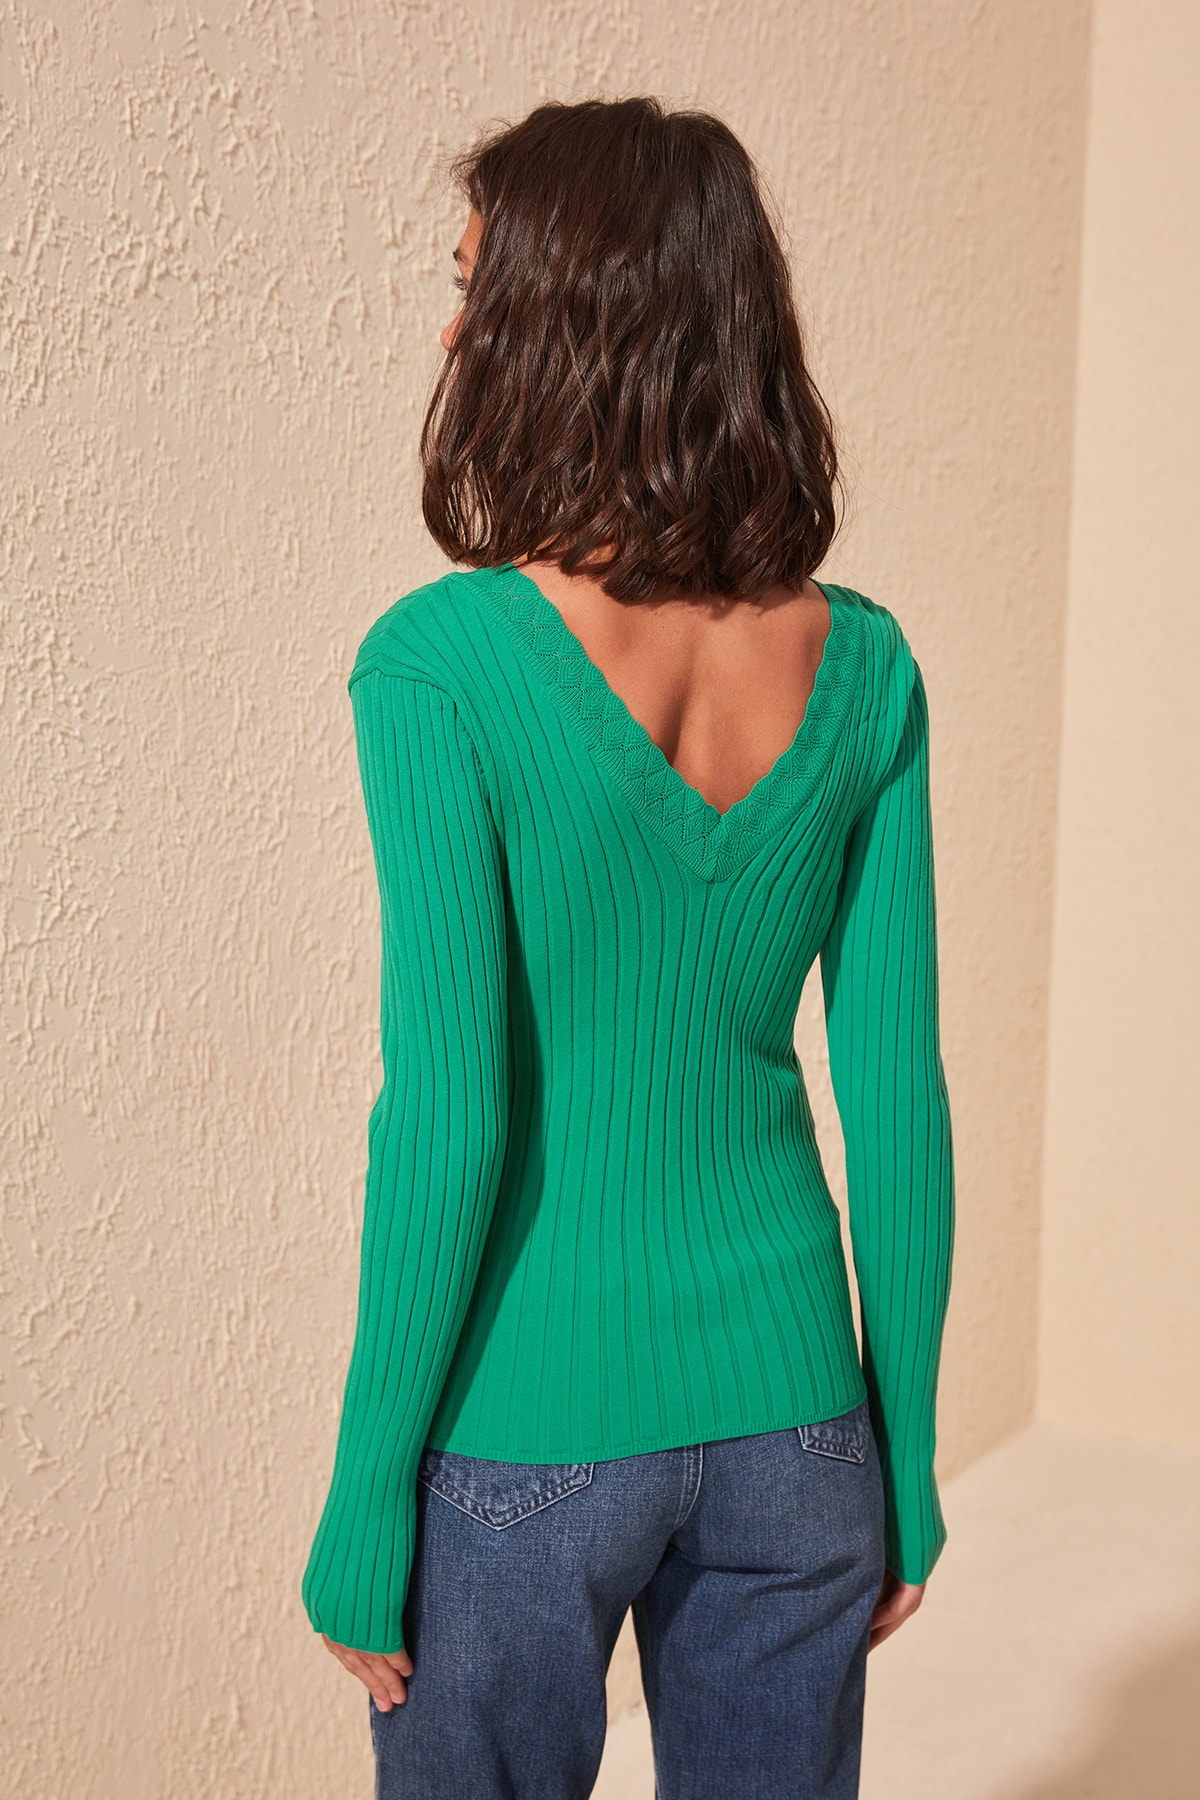 2020 Spring Soft Sweater Knit Women's Long Sleeves Autumn